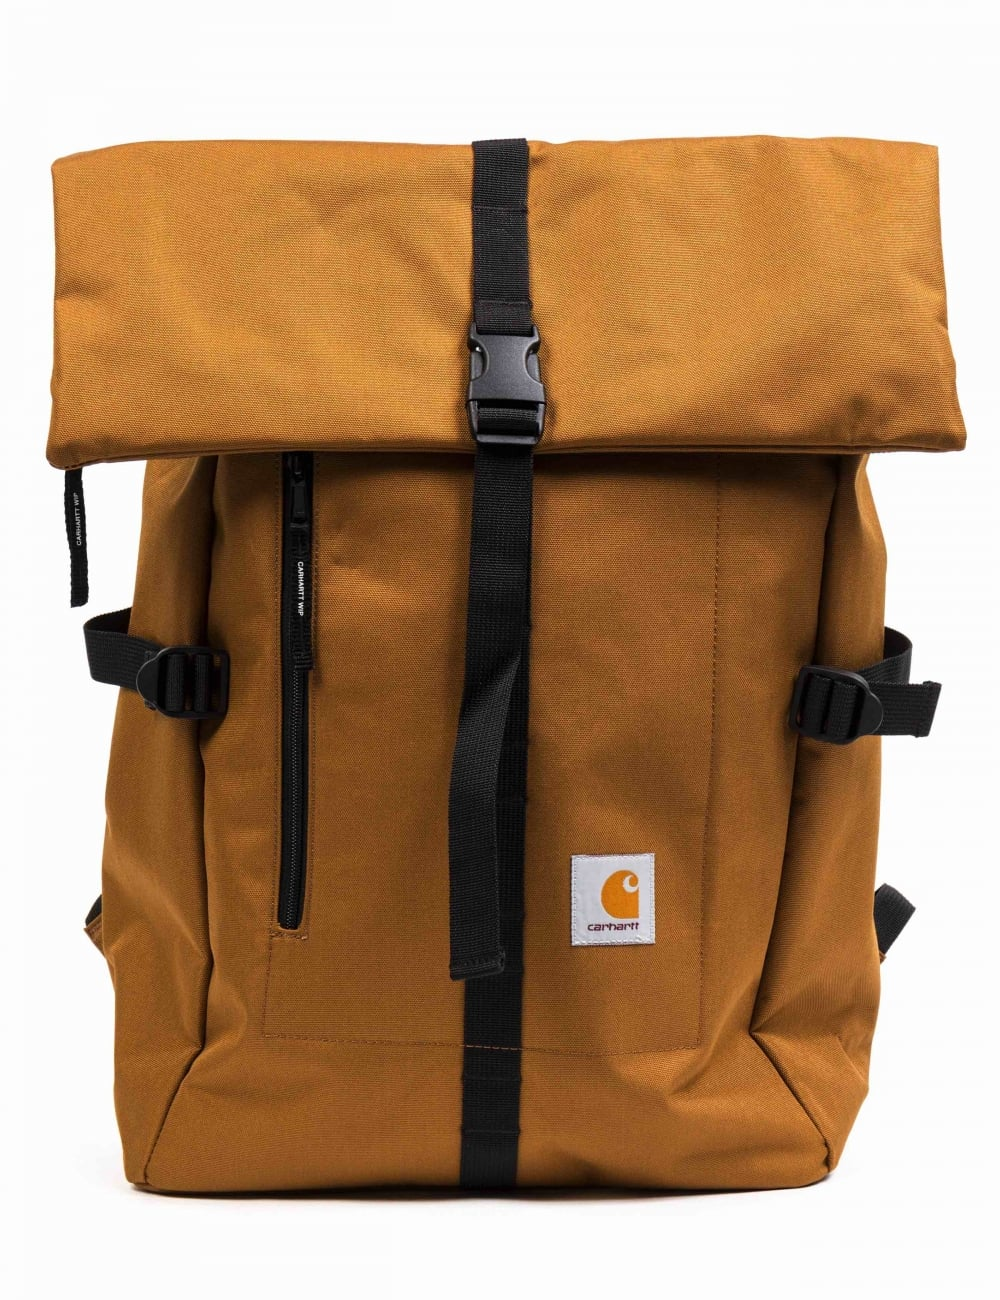 b37a0ed3e7 Carhartt WIP Phil Backpack - Hamilton Brown - Accessories from Fat ...